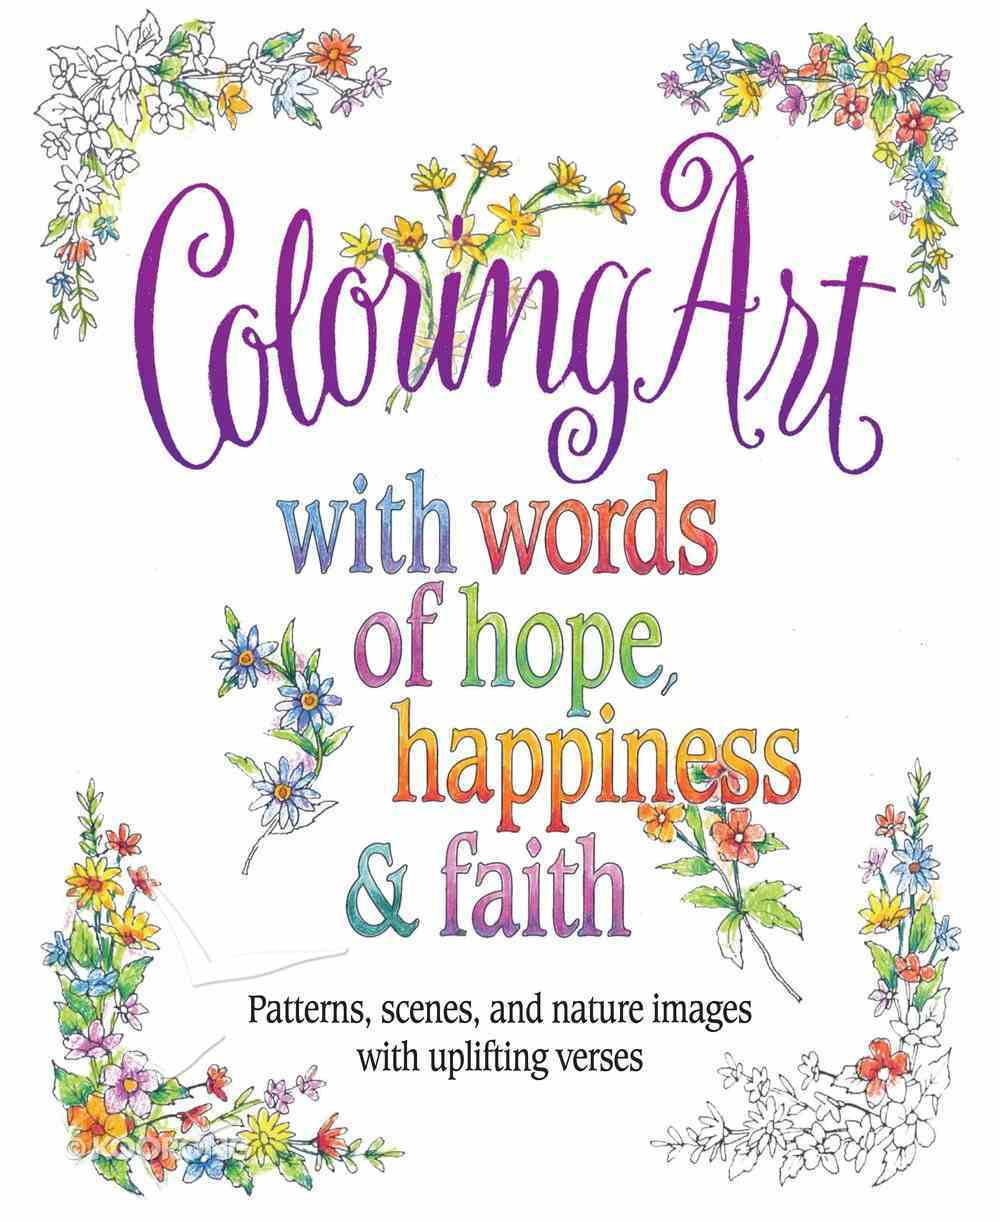 Coloring Art With Words of Hope, Happiness & Faith: Patterns, Scenes, and Nature Images With Uplifting Verses (Adult Coloring Books Series) Paperback